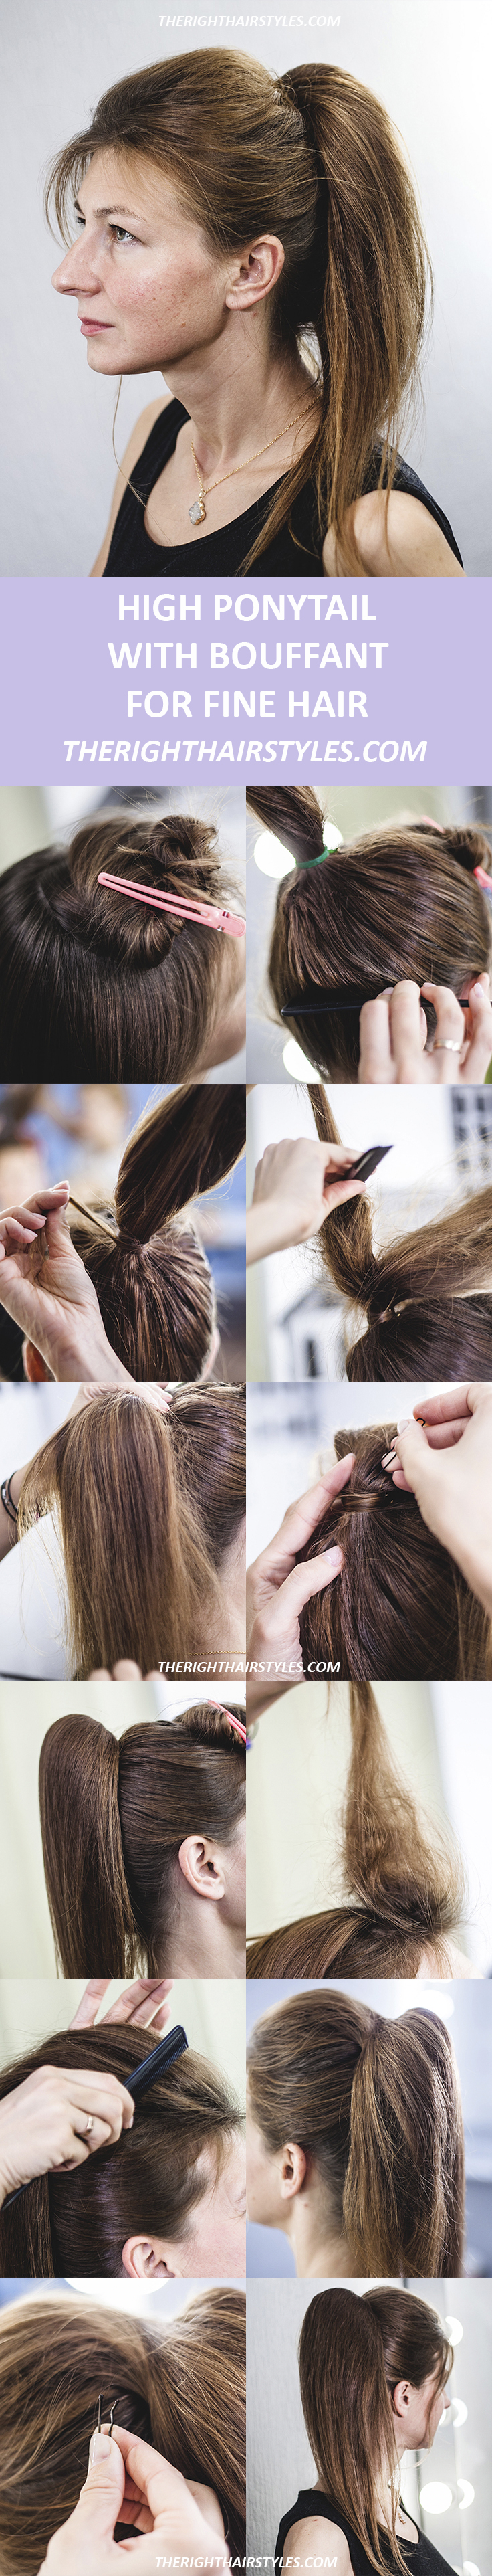 How to Make a High Ponytail in 6 Easy Steps